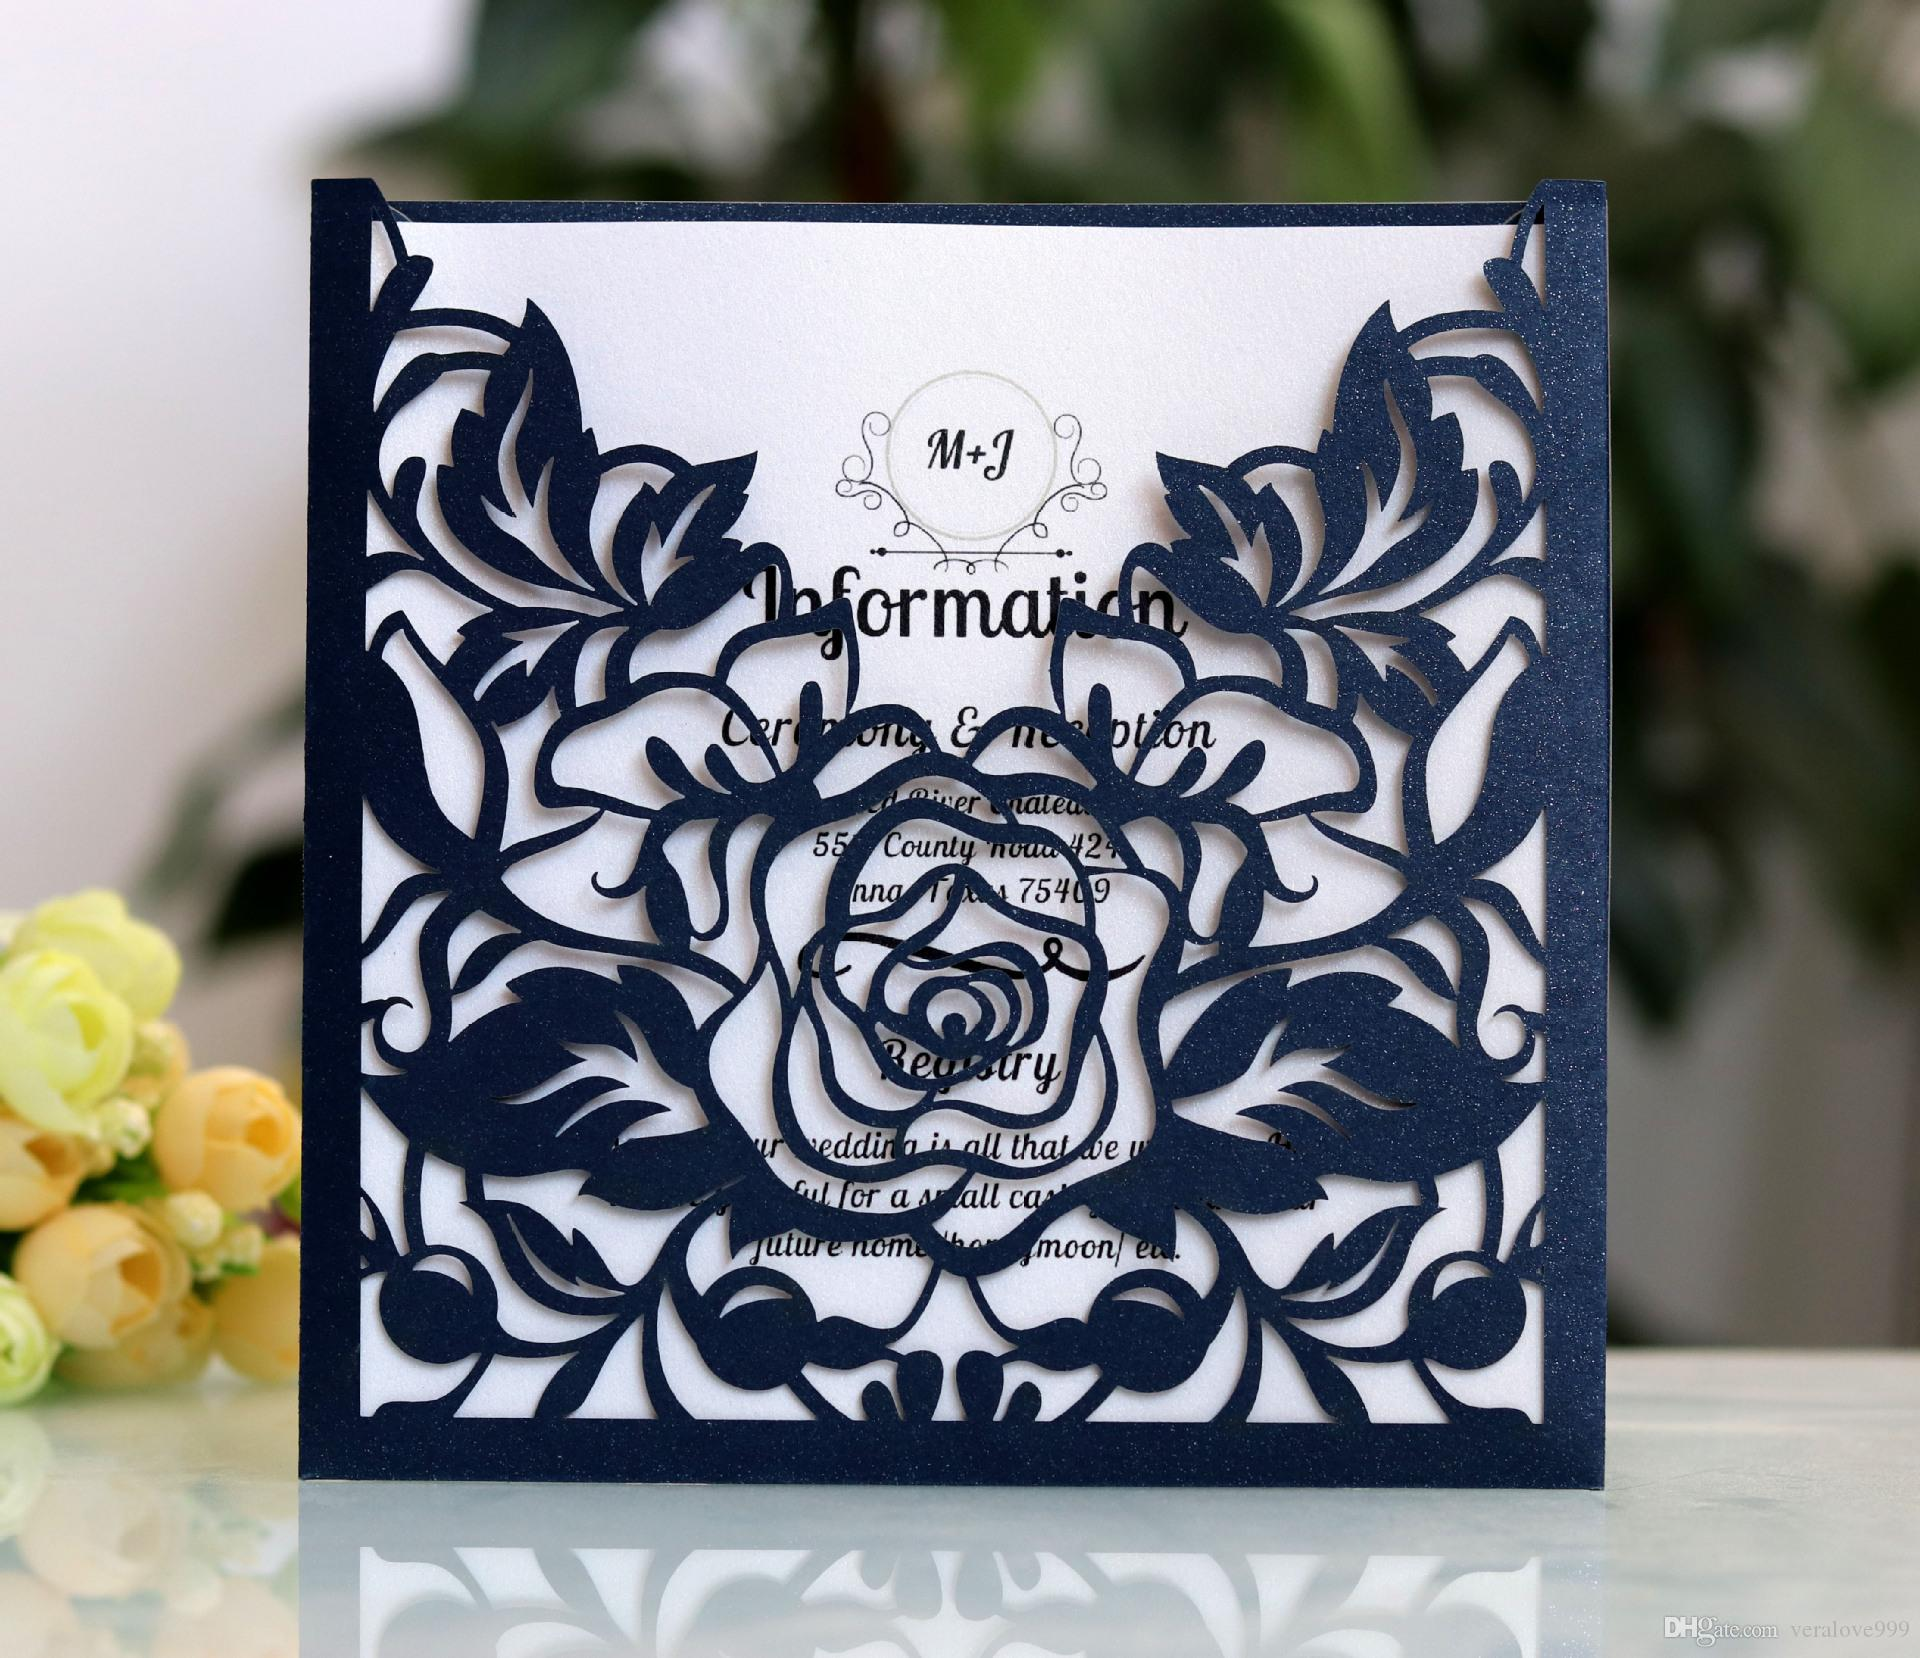 Affordable Wedding Invitations.2019 Affordable Wedding Invites Laser Cut Pocket Wedding Invitation Suites Customizable Invites With Envelope Blank Inner Custom Printed Sample